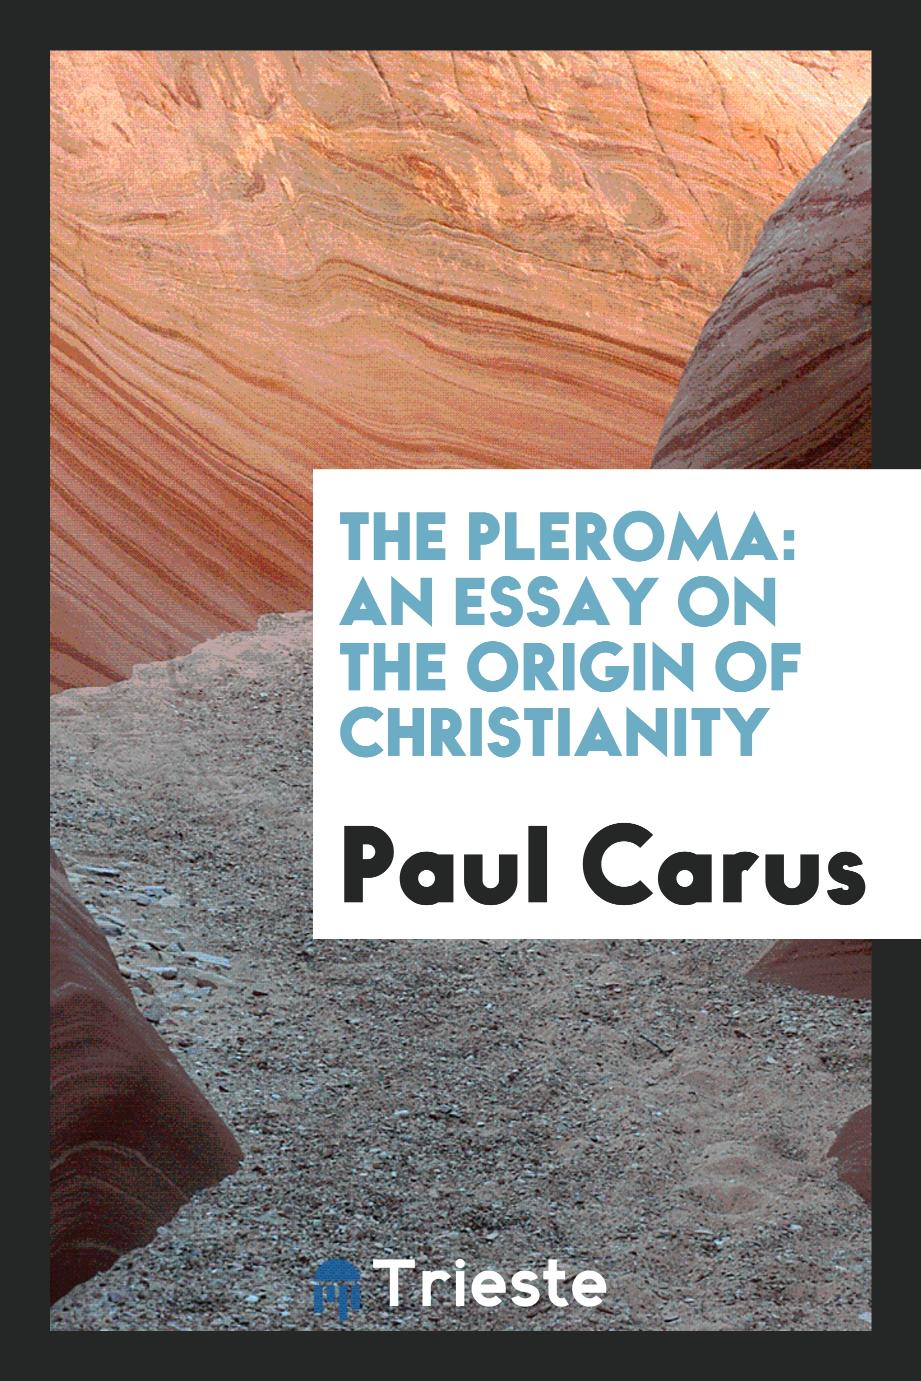 The Pleroma: An Essay on the Origin of Christianity